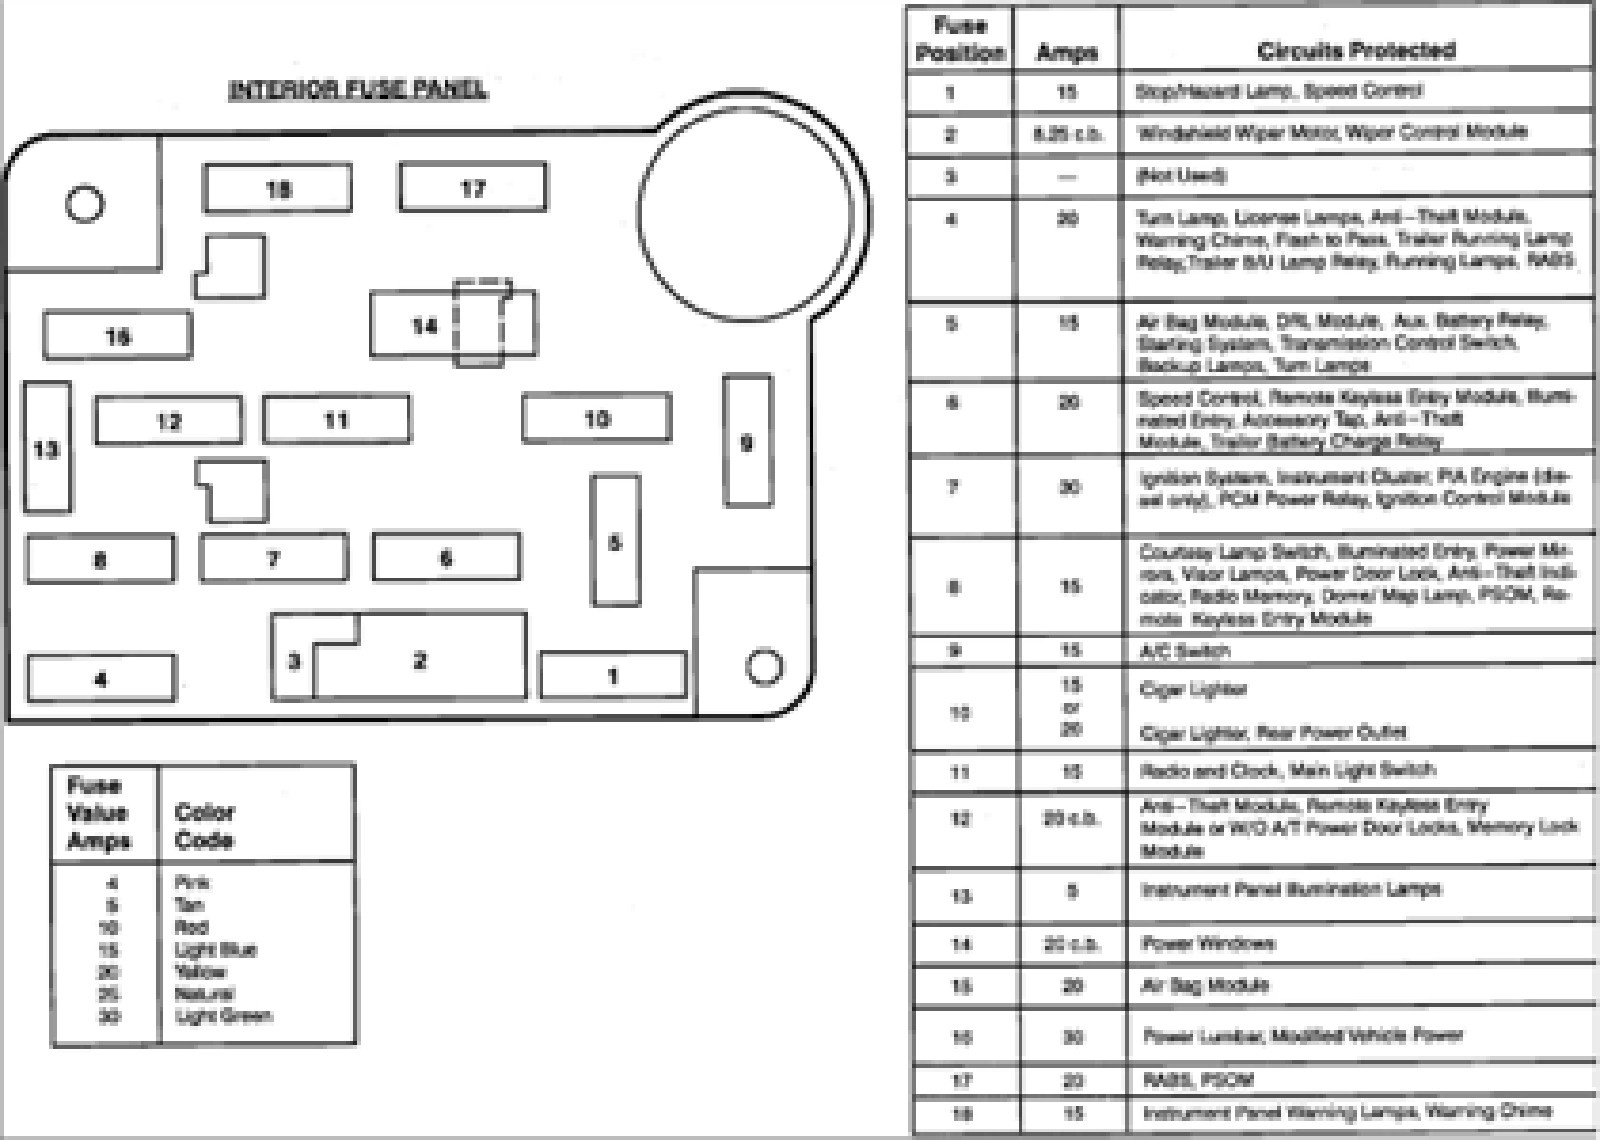 ford e 150 questions fuse diagram for a 1993 ford econoline van rh cargurus com 1997 ford f150 4.6 fuse diagram 1997 ford f150 4x4 fuse diagram